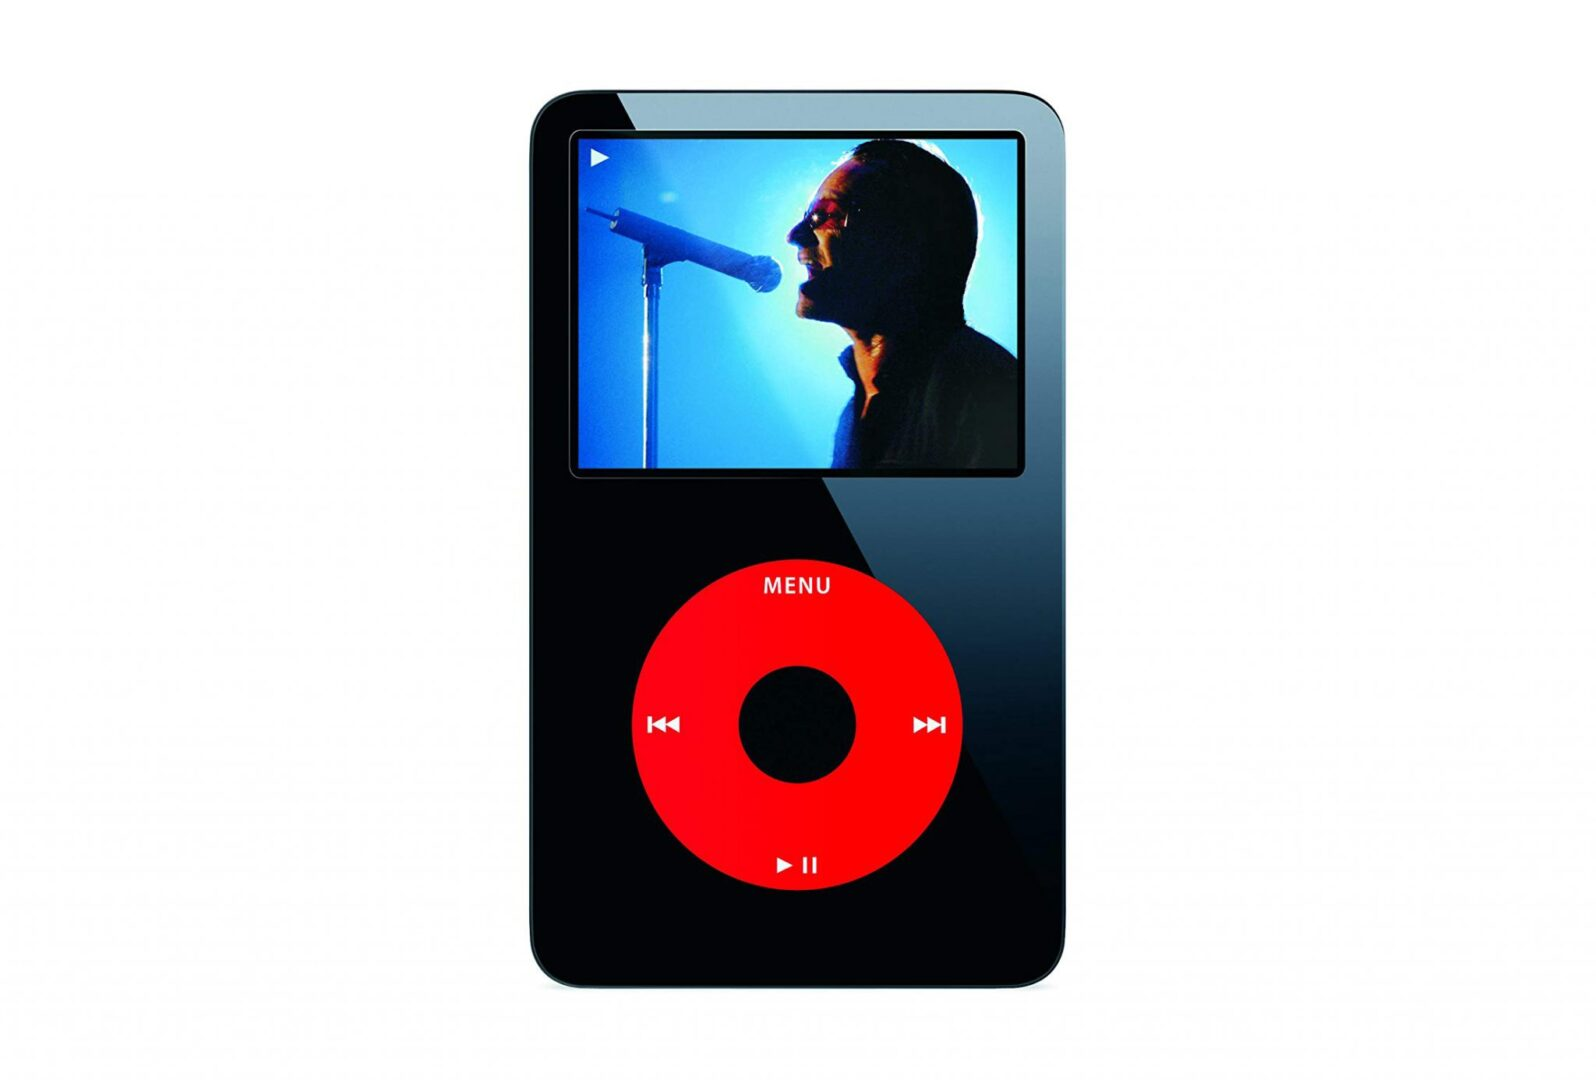 iPod U2 Special Edition with Video